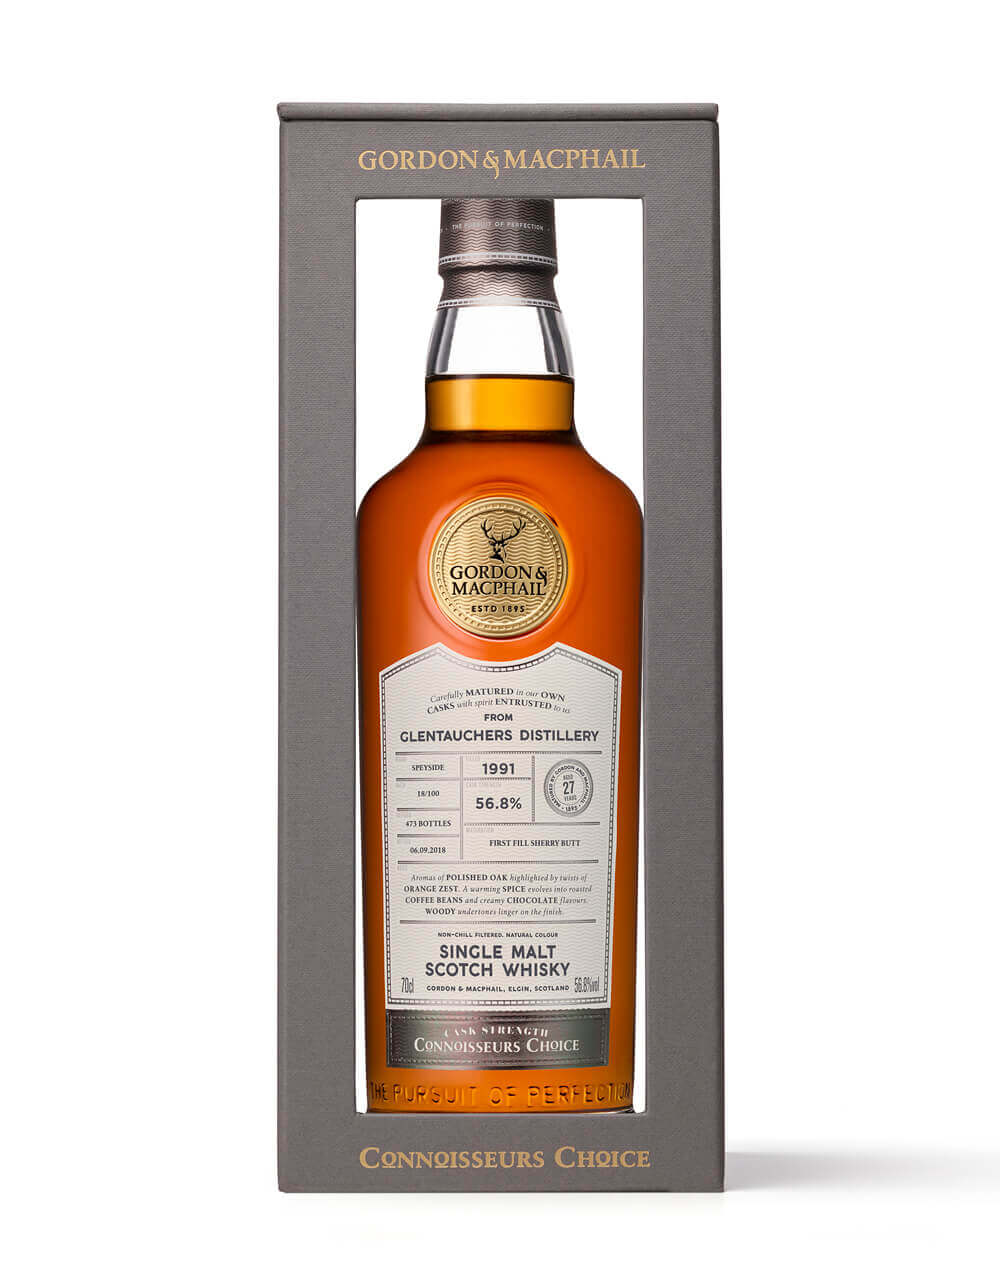 Gordon & MacPhail Connoisseurs Choice Collection November 2018